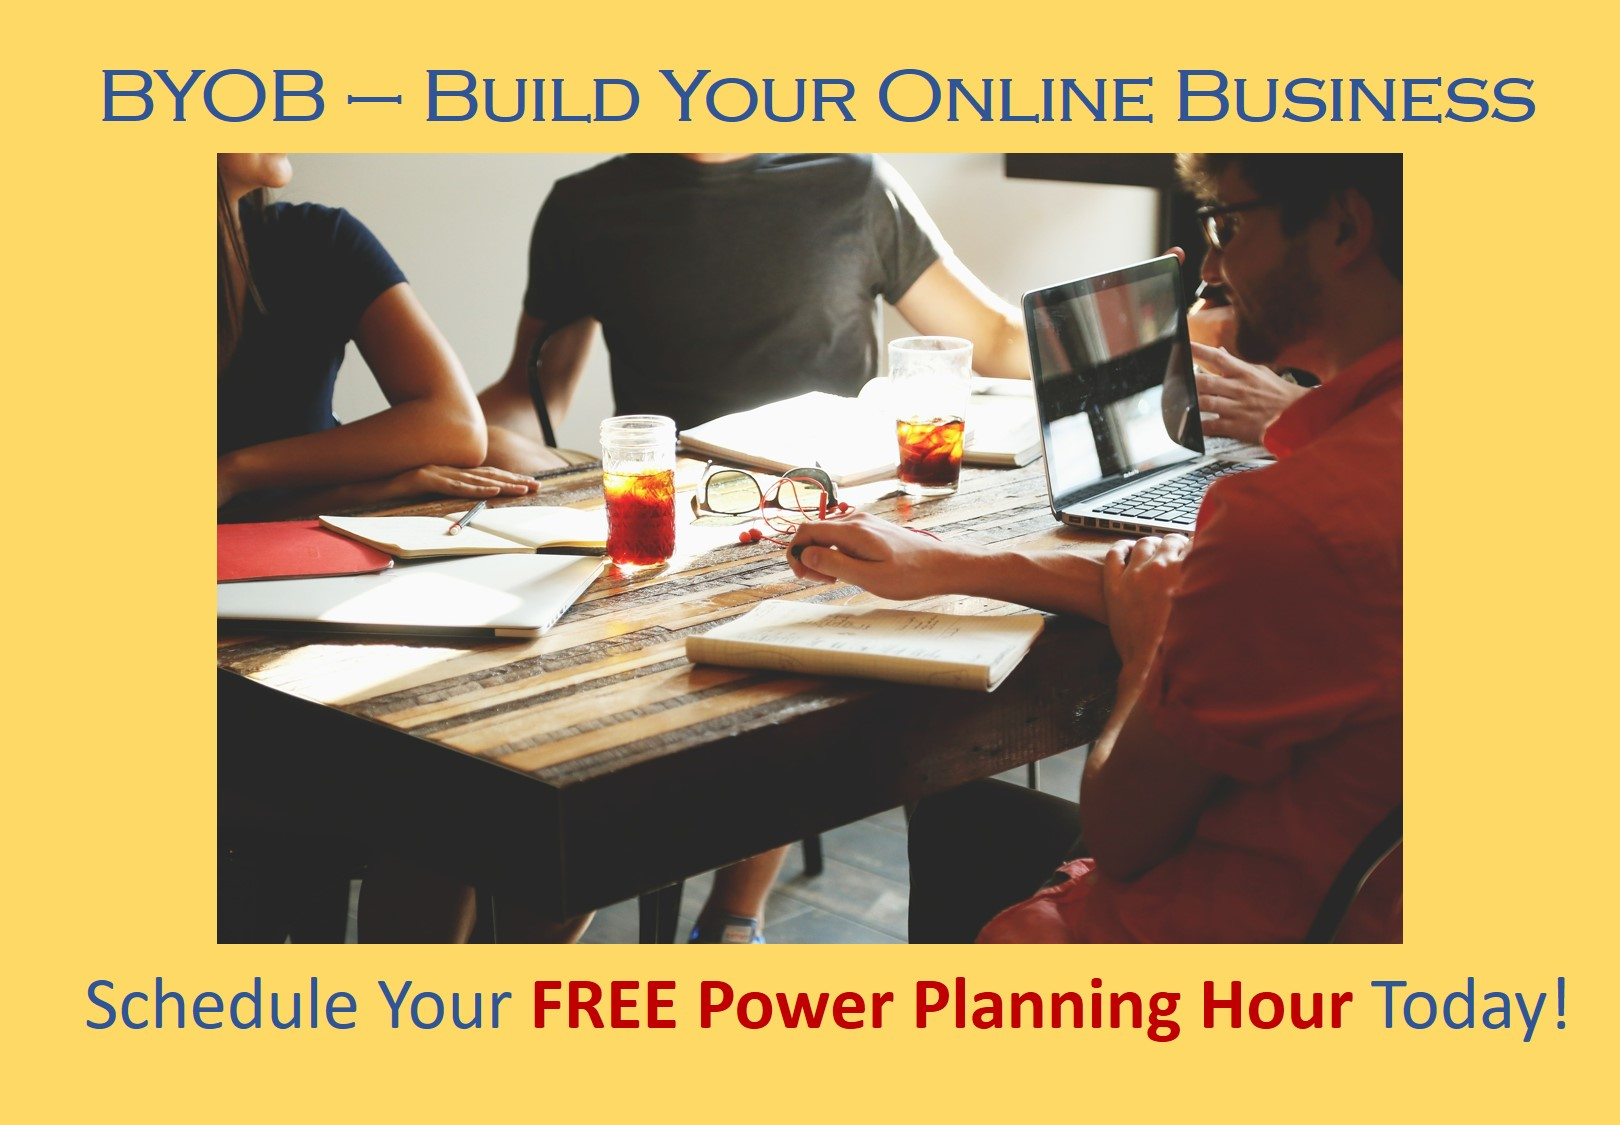 Free Power Planning Hour